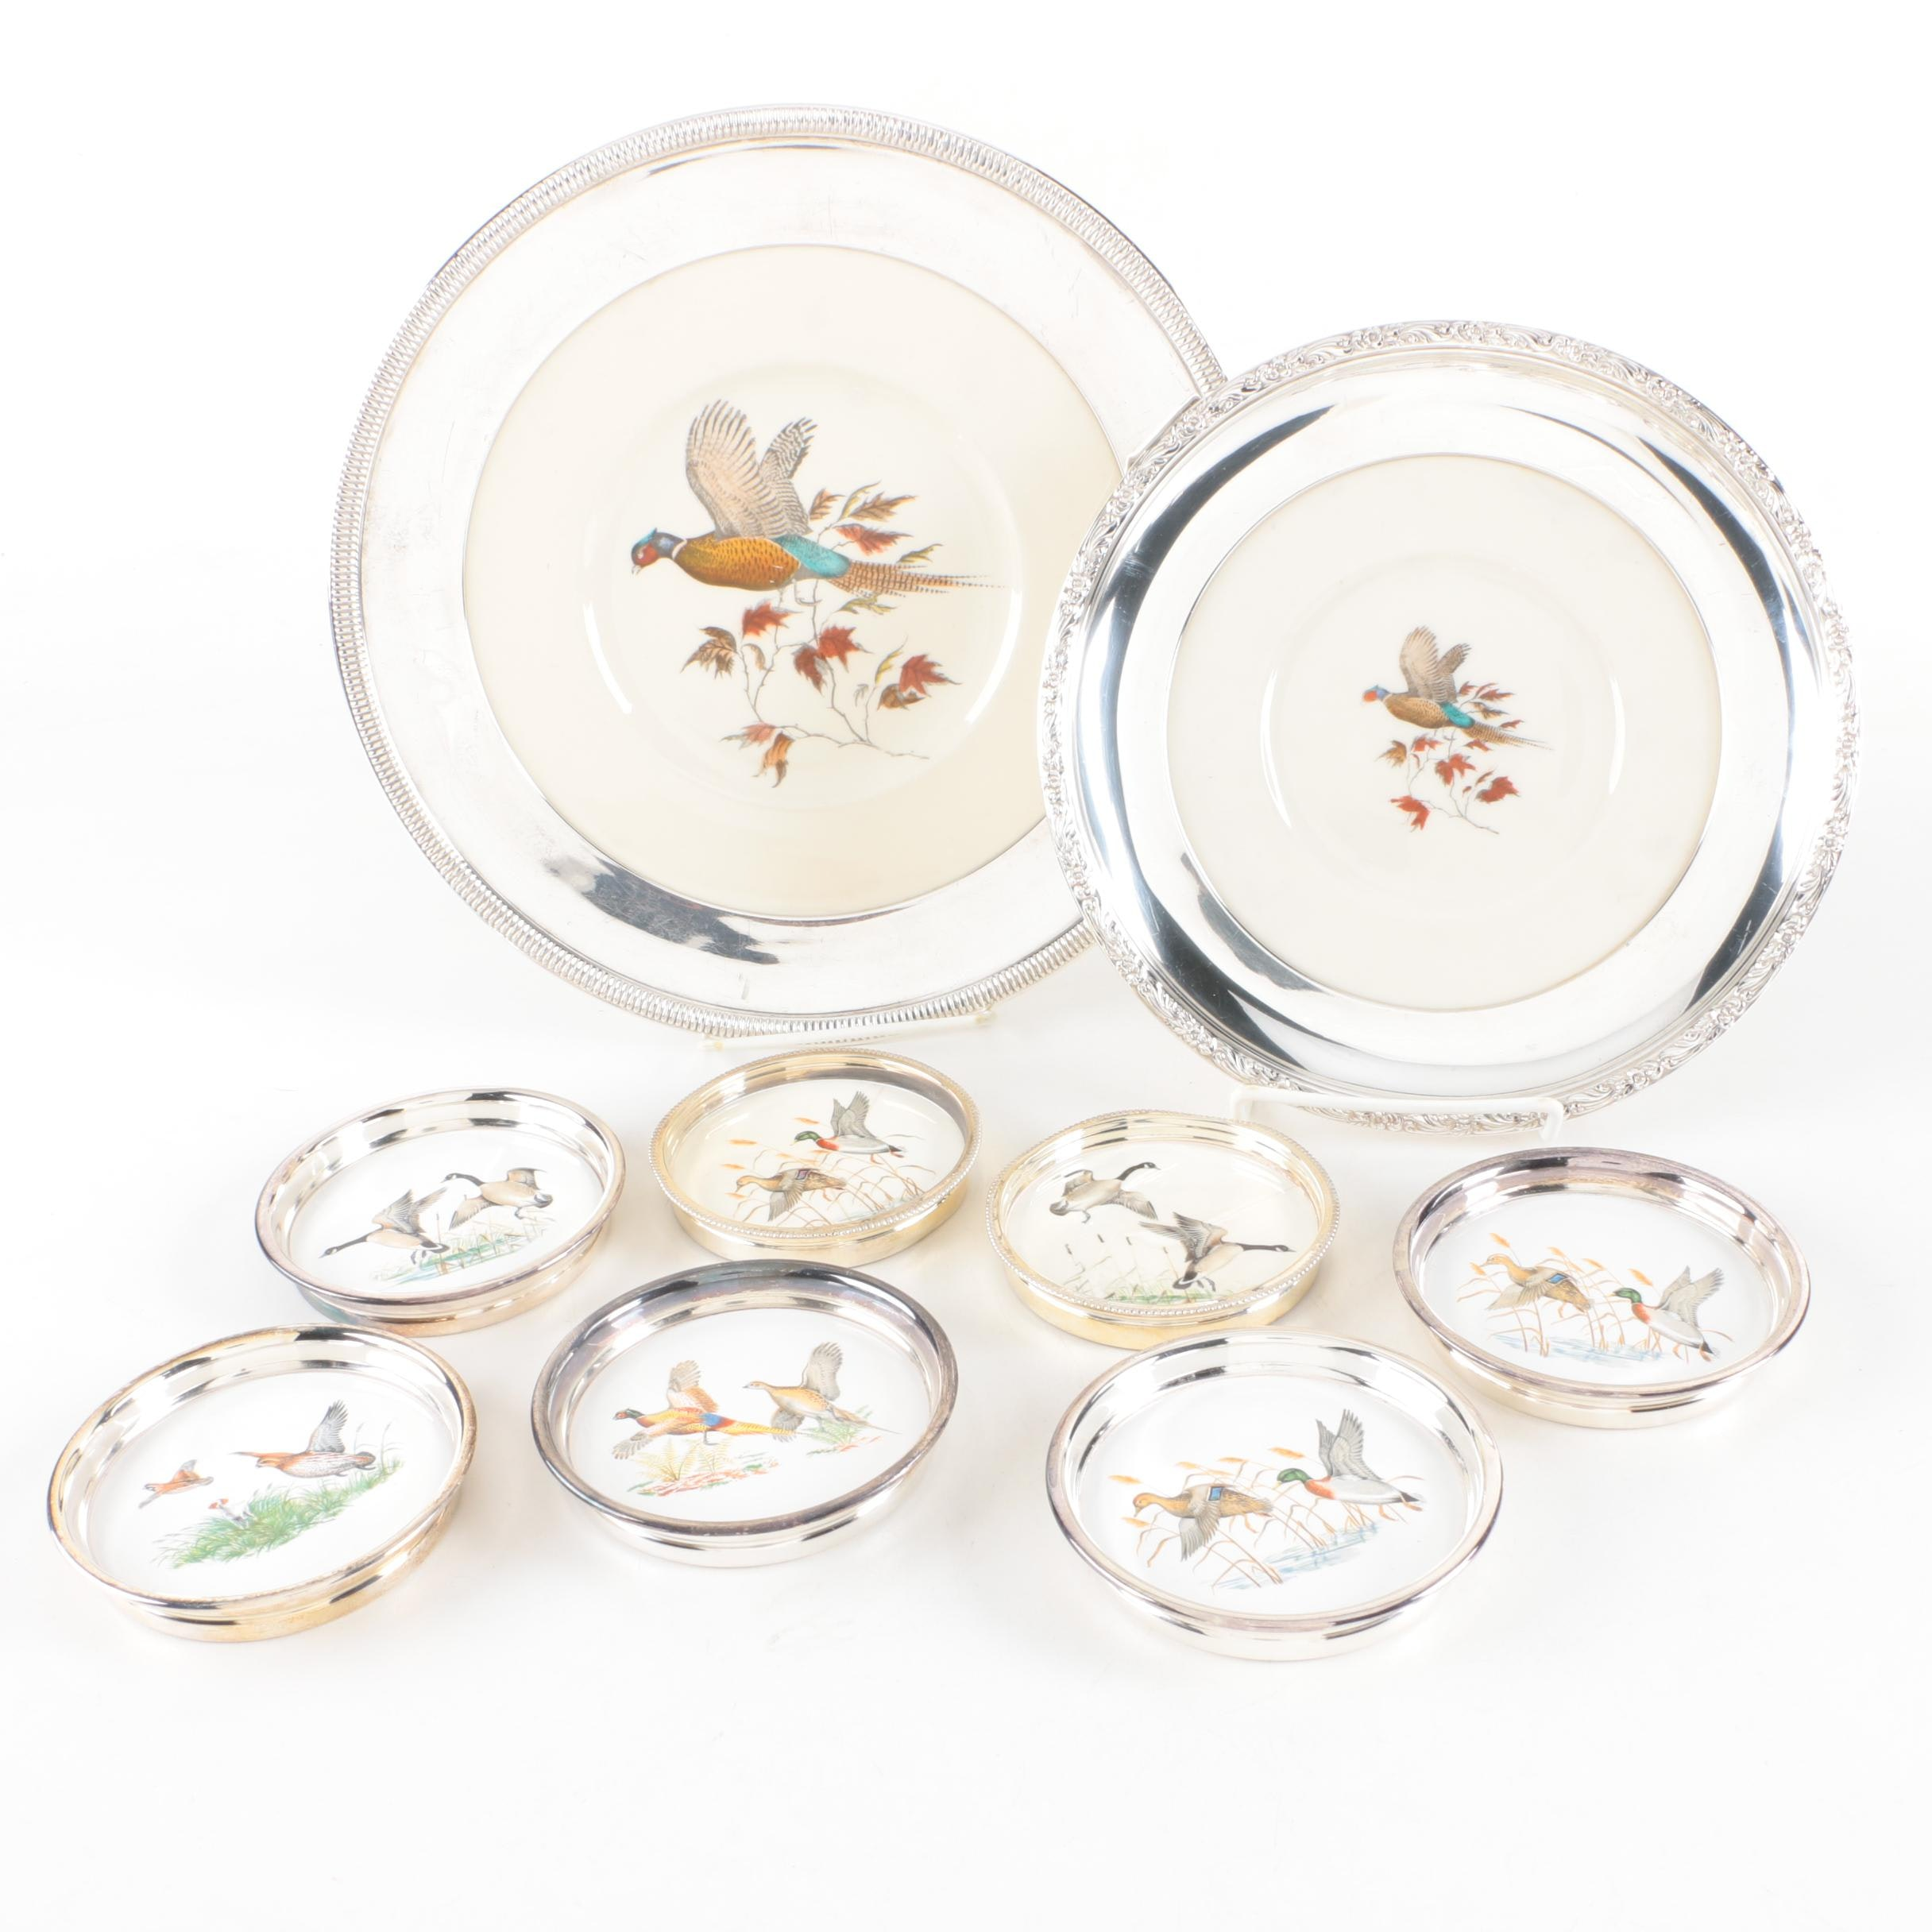 Sterling Silver and Porcelain Avian Themed Plates and Coasters